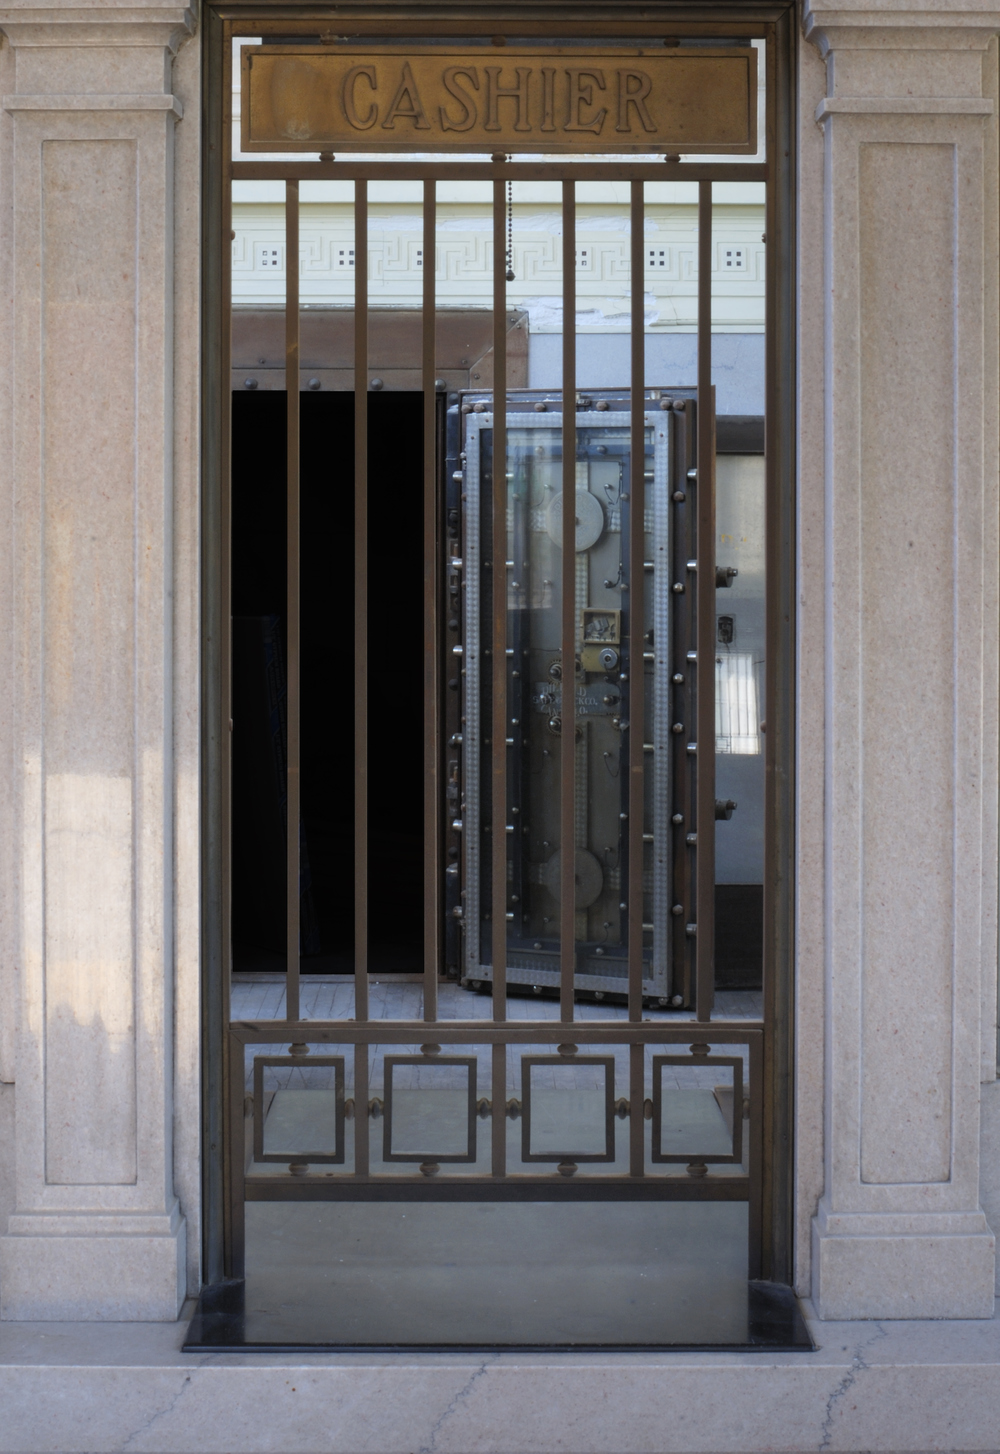 View of the vault through the original teller box taken in 2007 during the four year renovation.